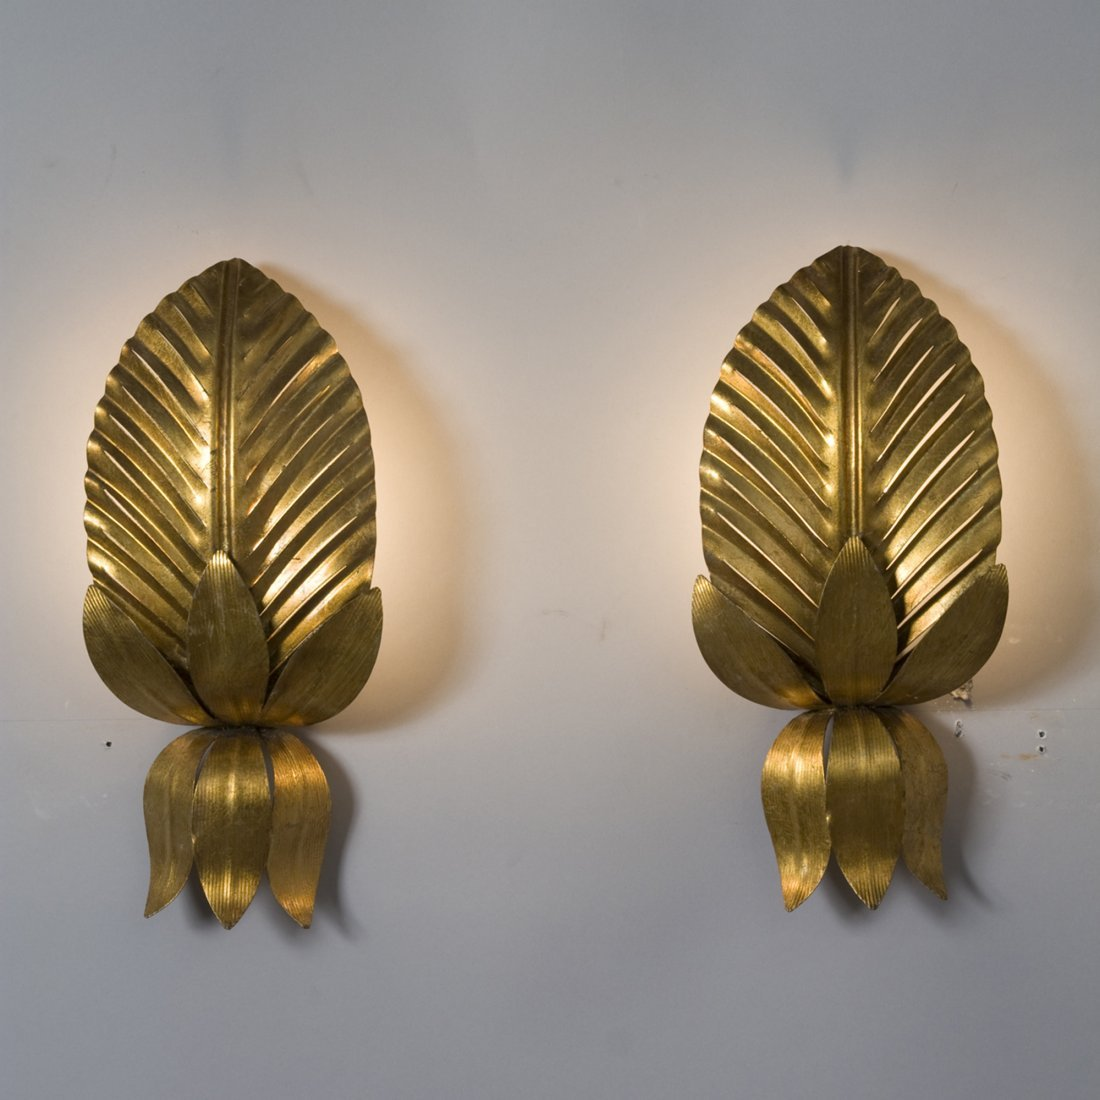 Leaf Sconces by Paavo Tynell